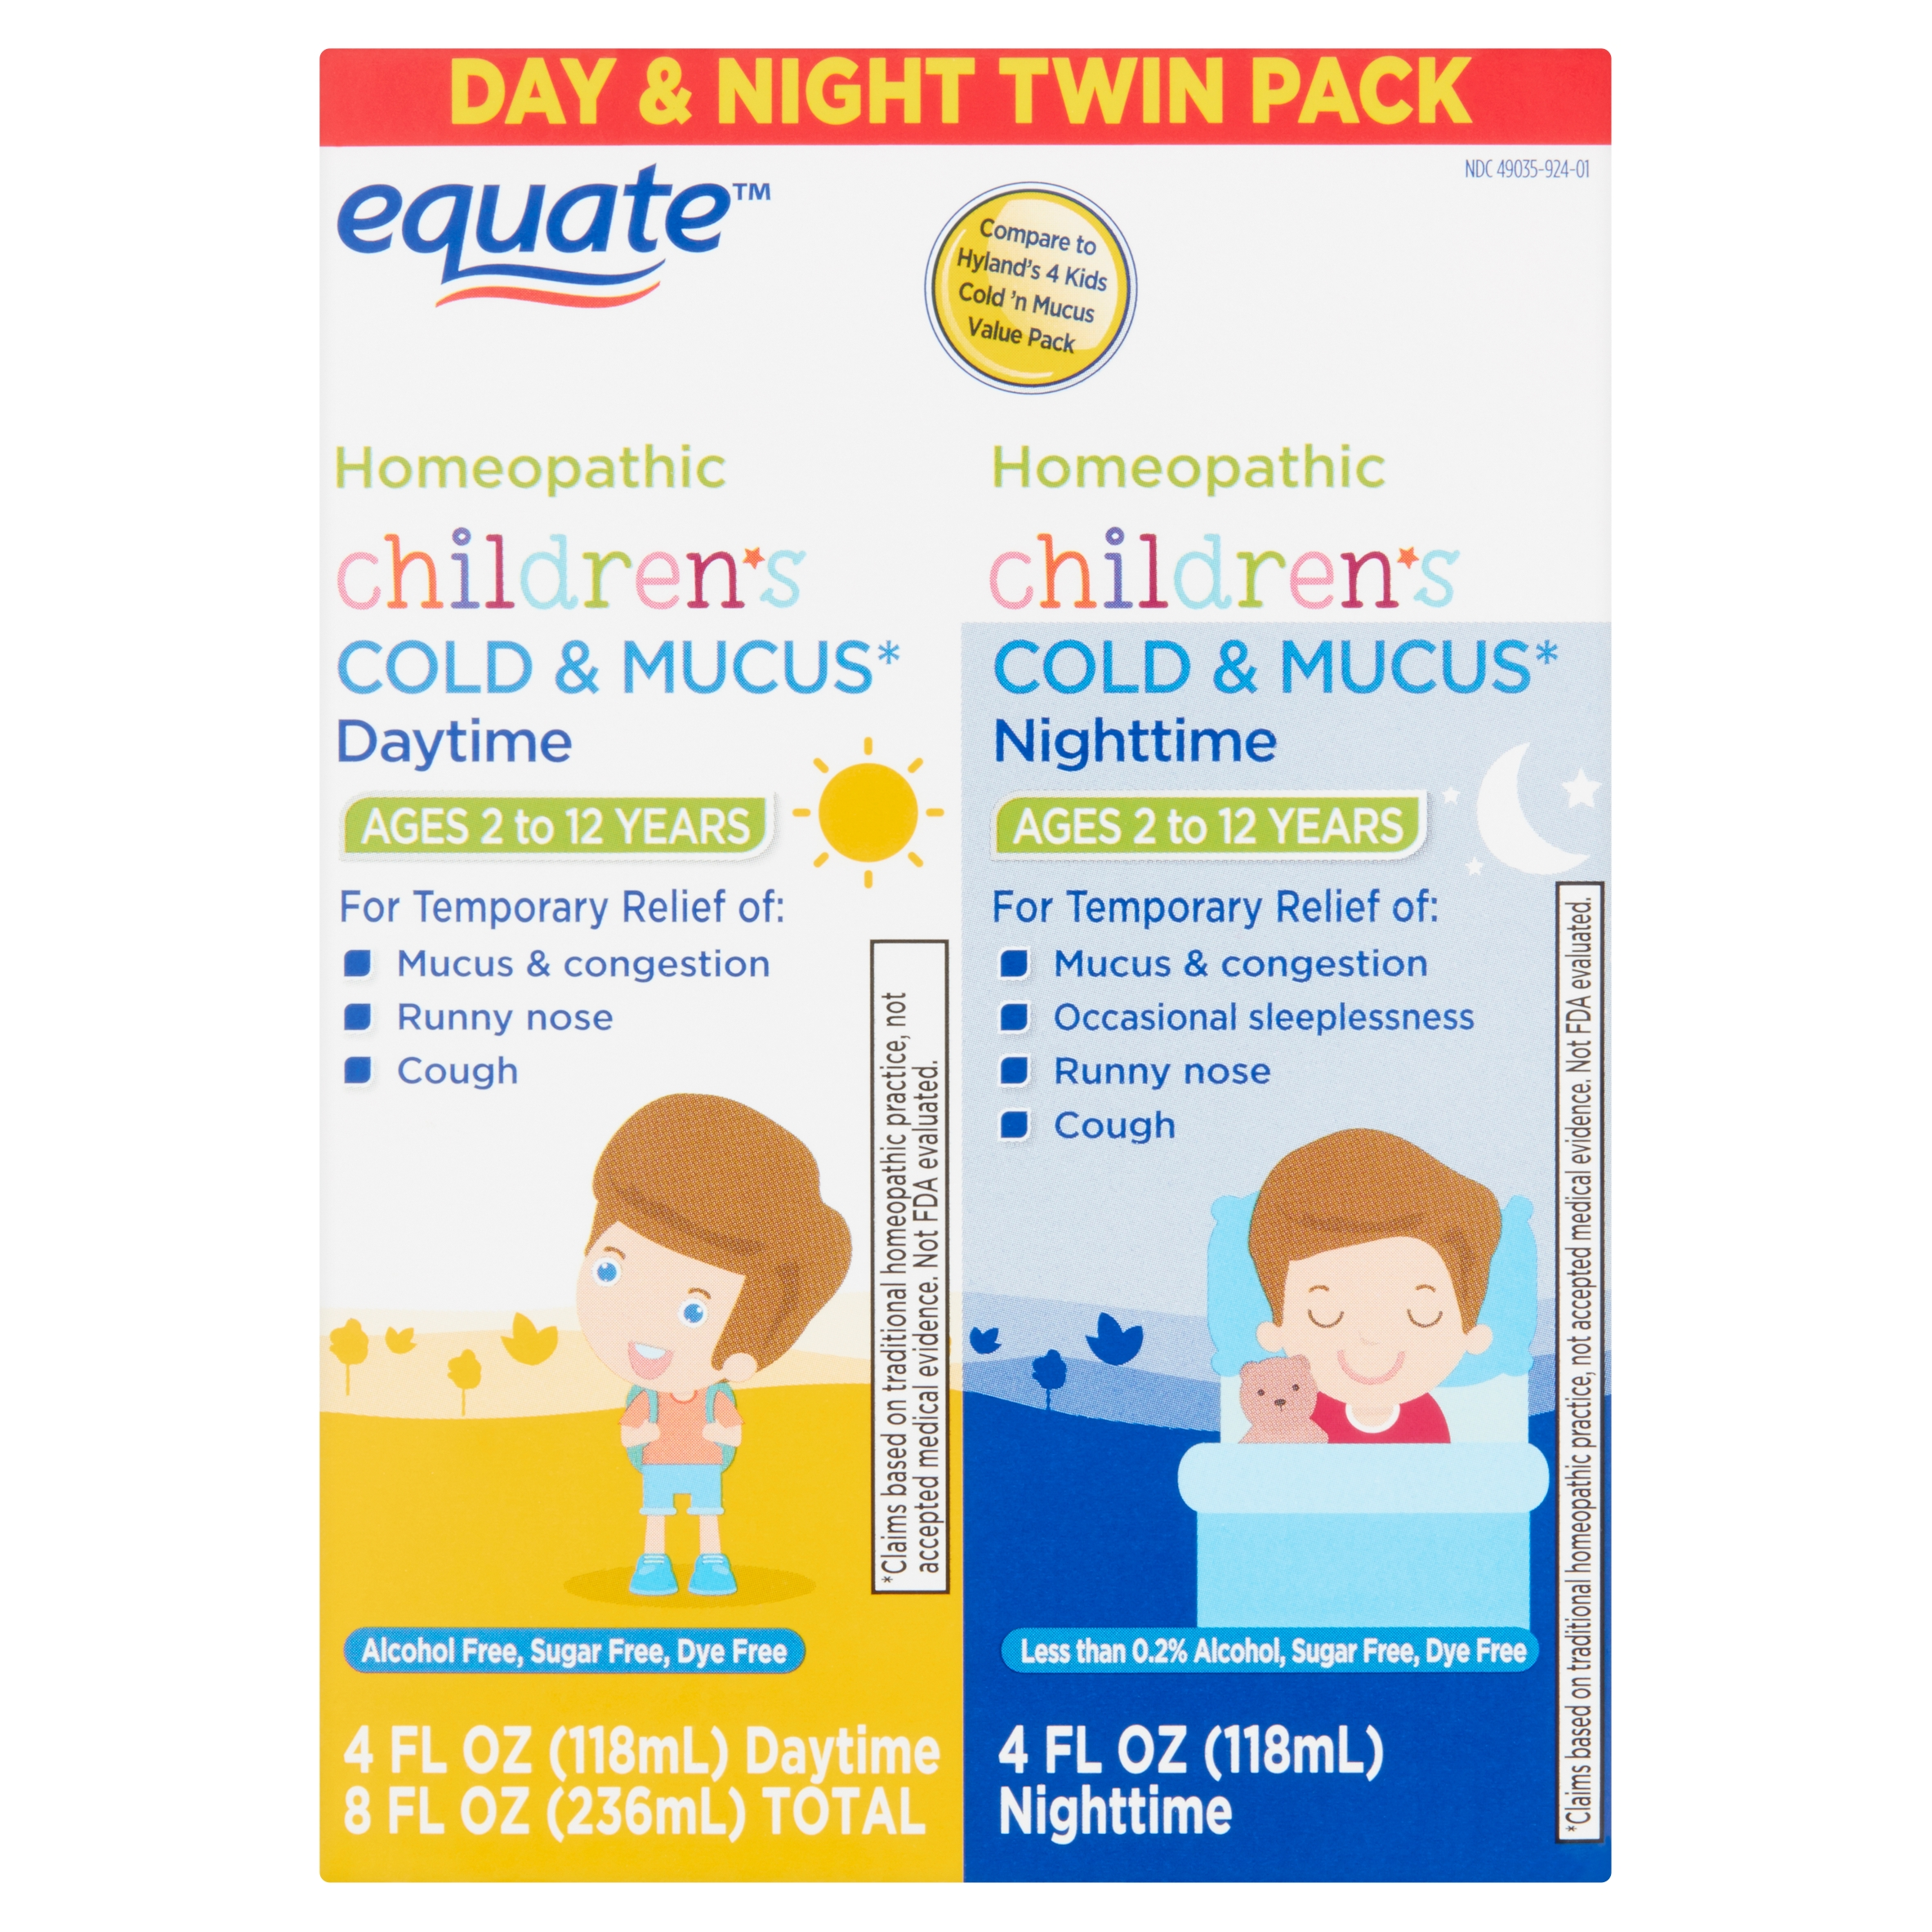 Equate Children's Homeopathic Daytime & Nighttime Cold & Mucus Liquid Twin Pack, 4 fl oz, 2 Pack